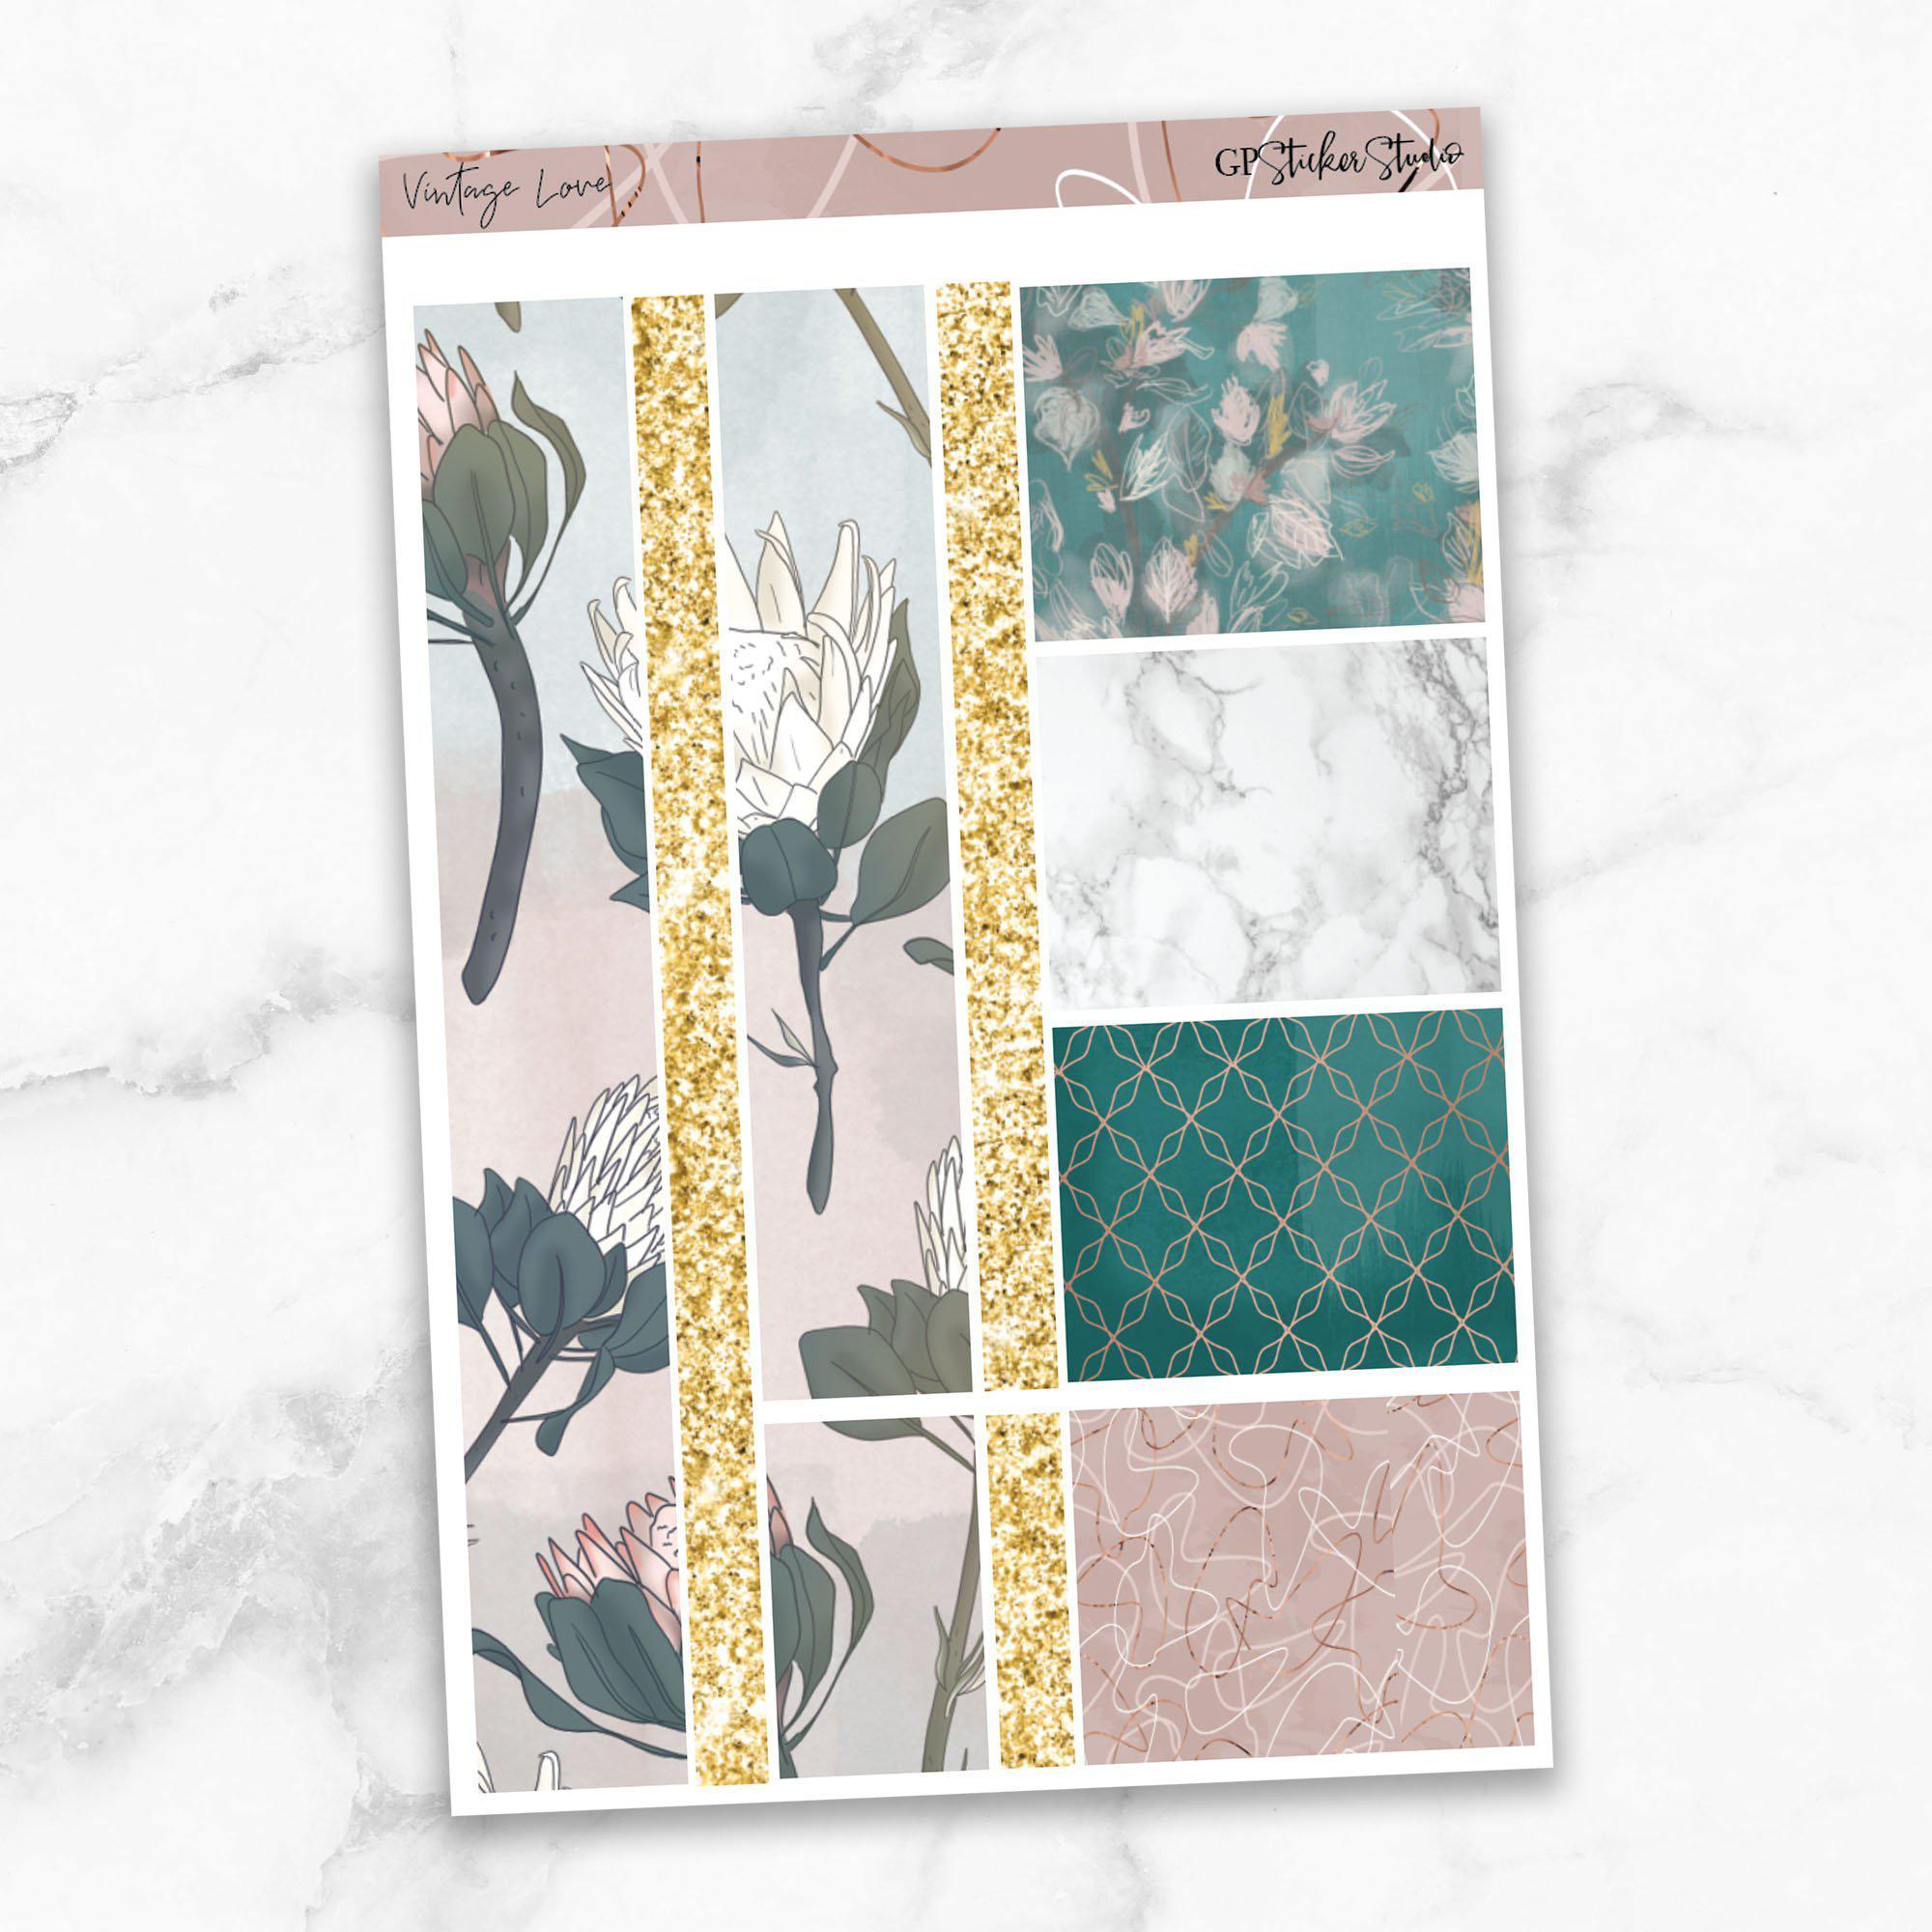 VINTAGE LOVE Washi Sheet Stickers-The GP Studio